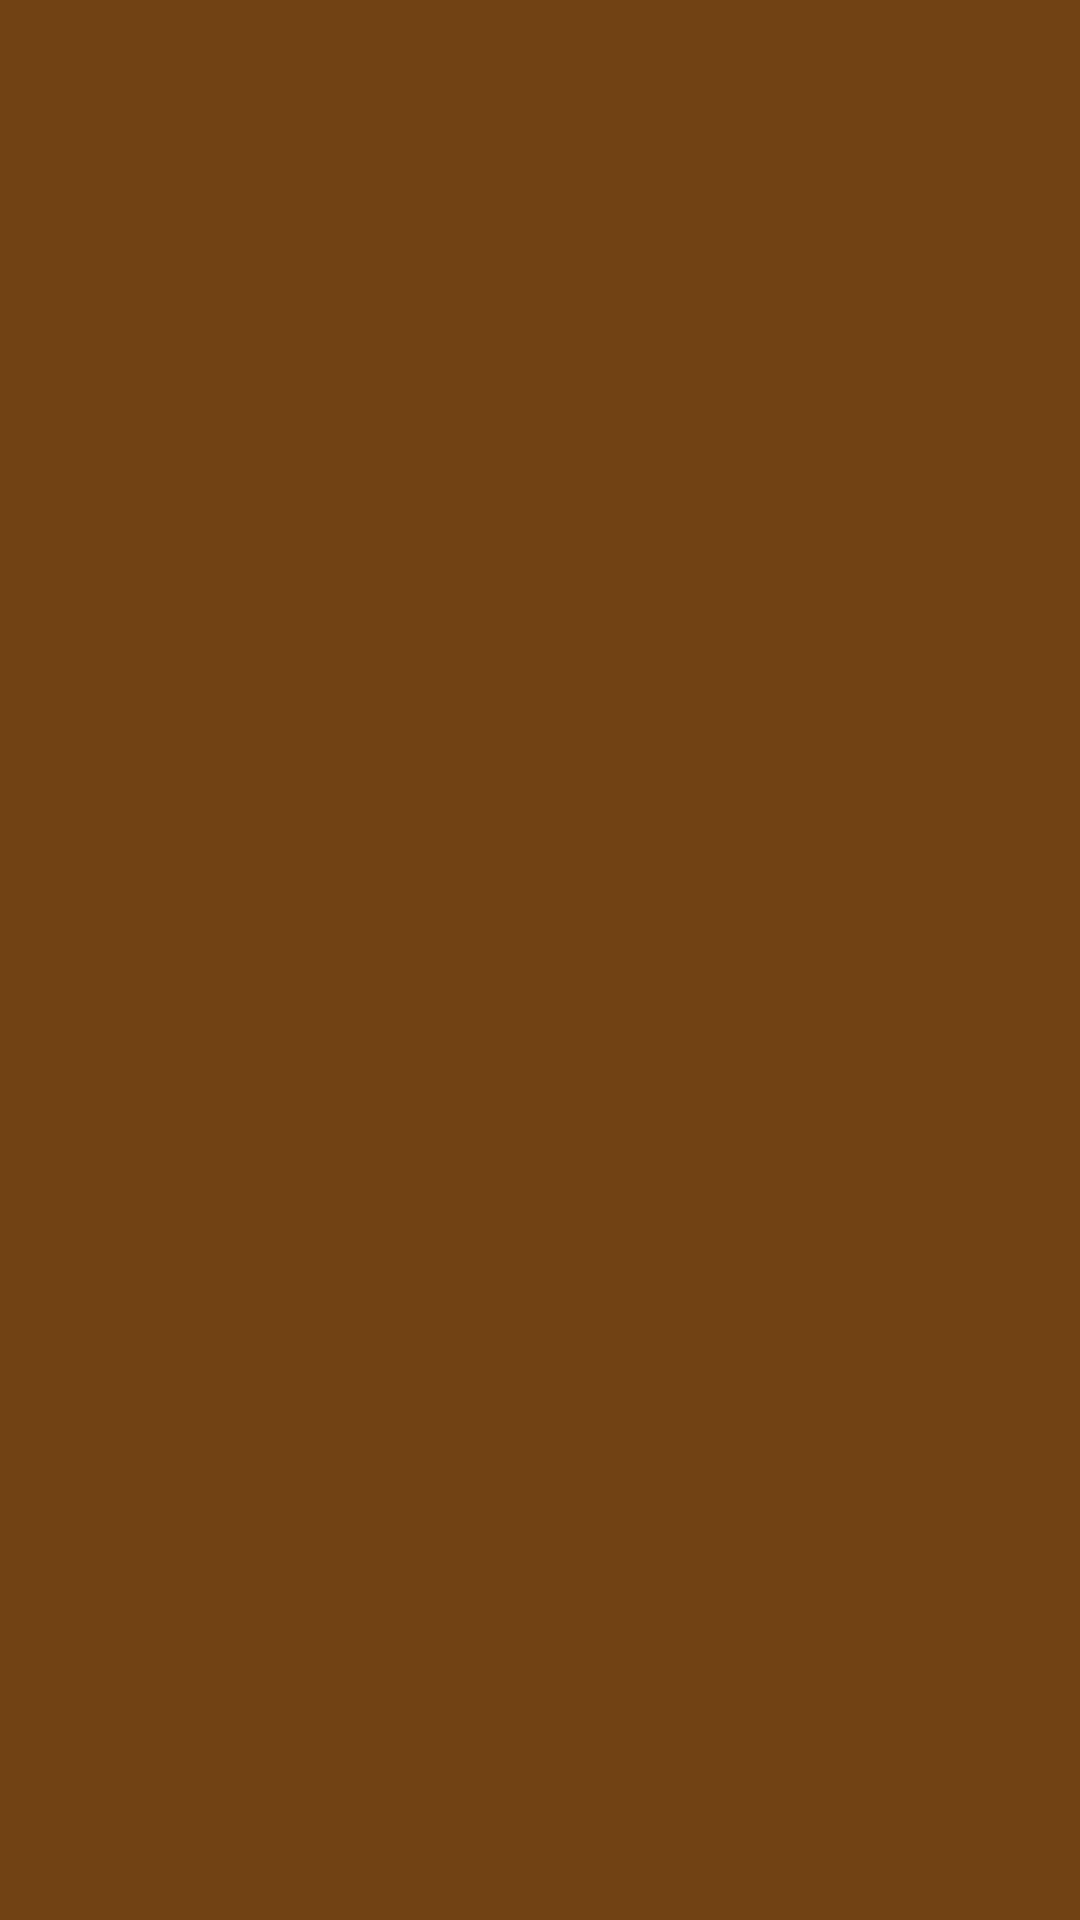 1080x1920 Sepia Solid Color Background